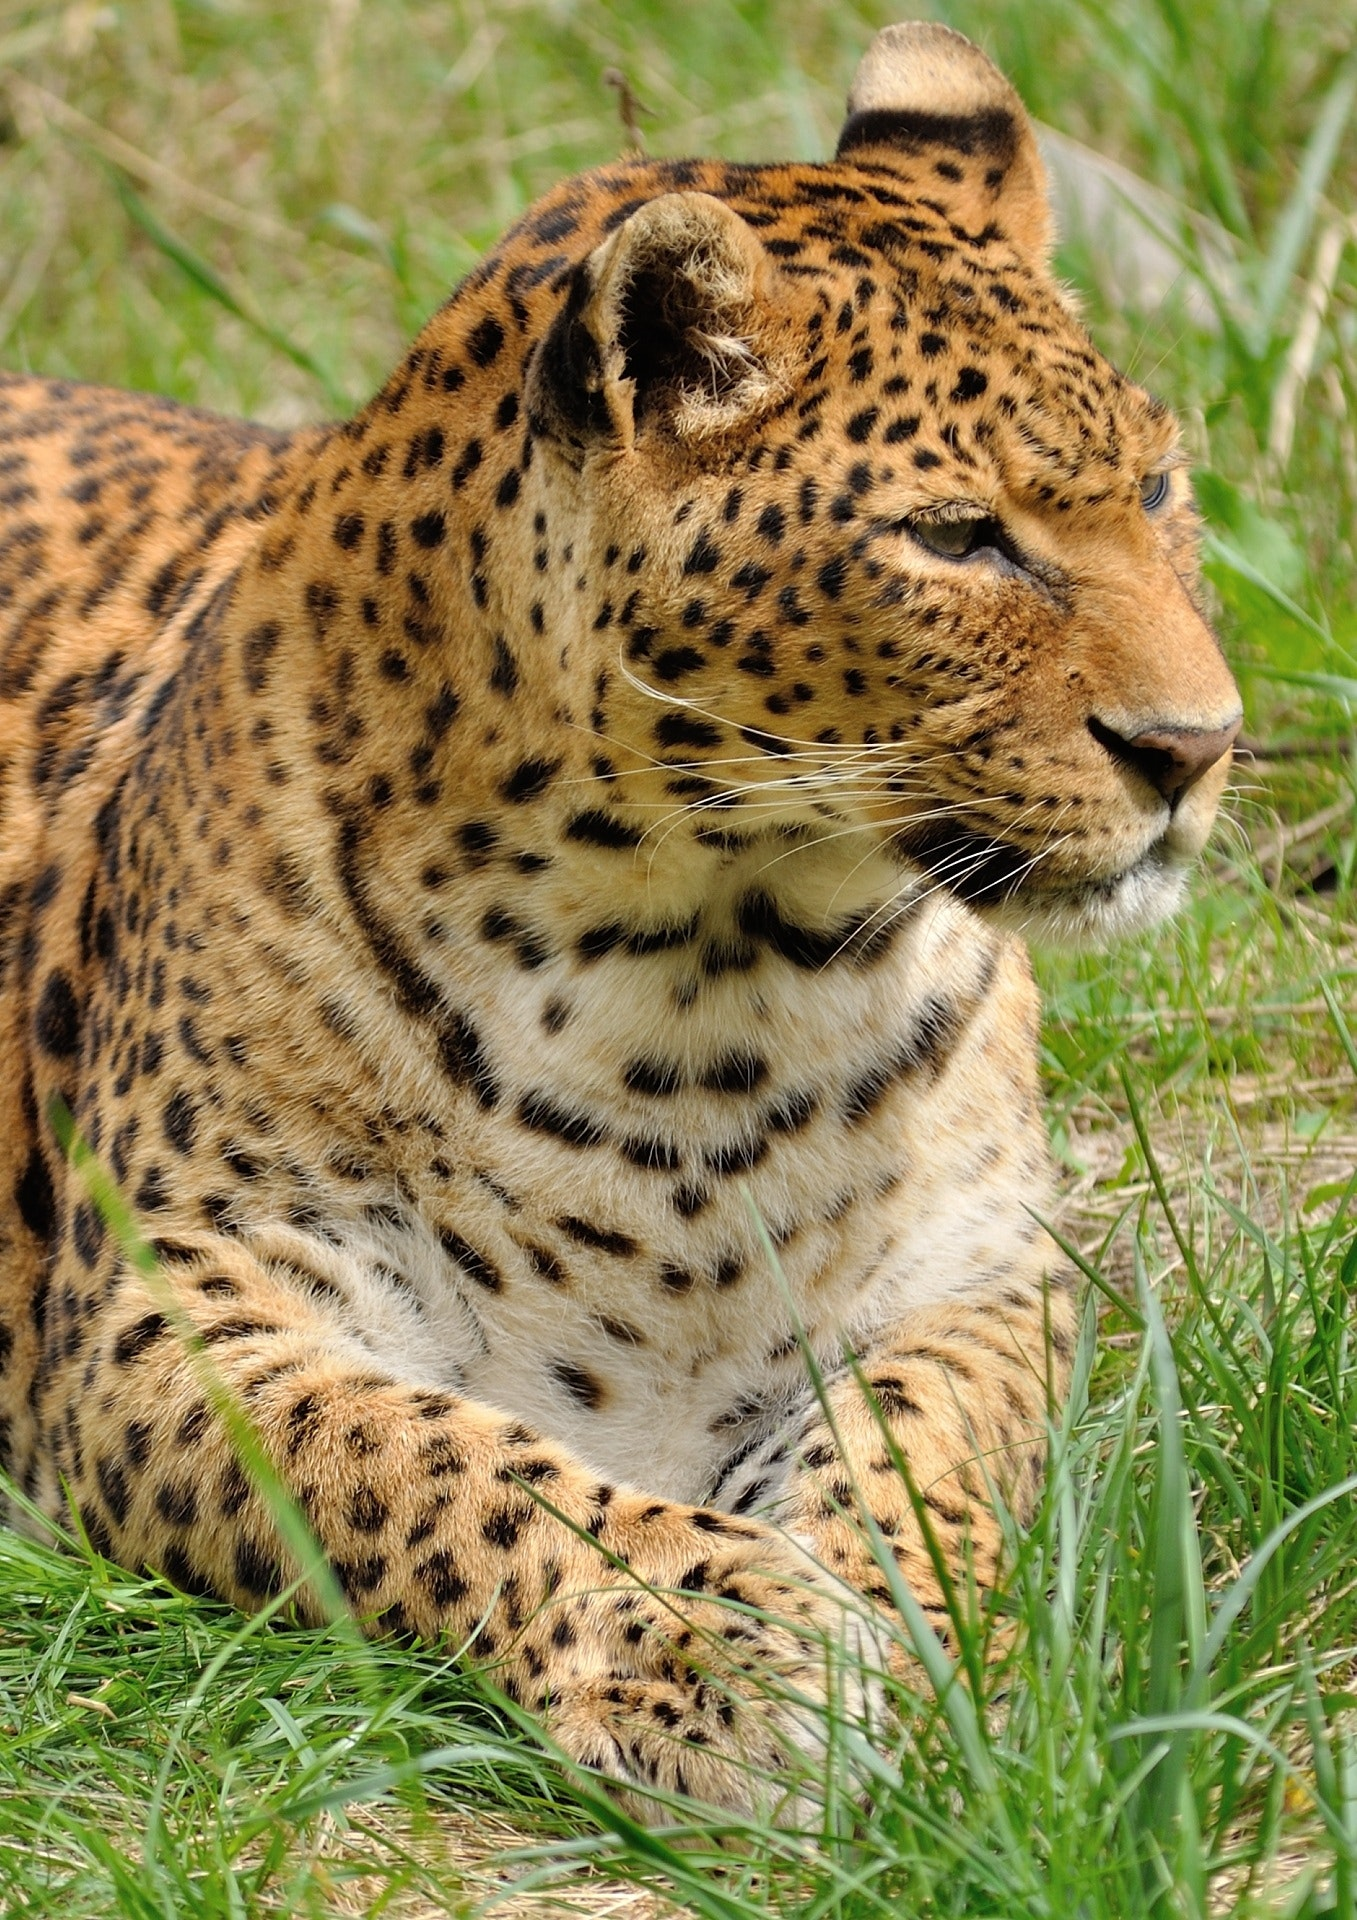 Leopard Lying In The Grass 183 Free Stock Photo